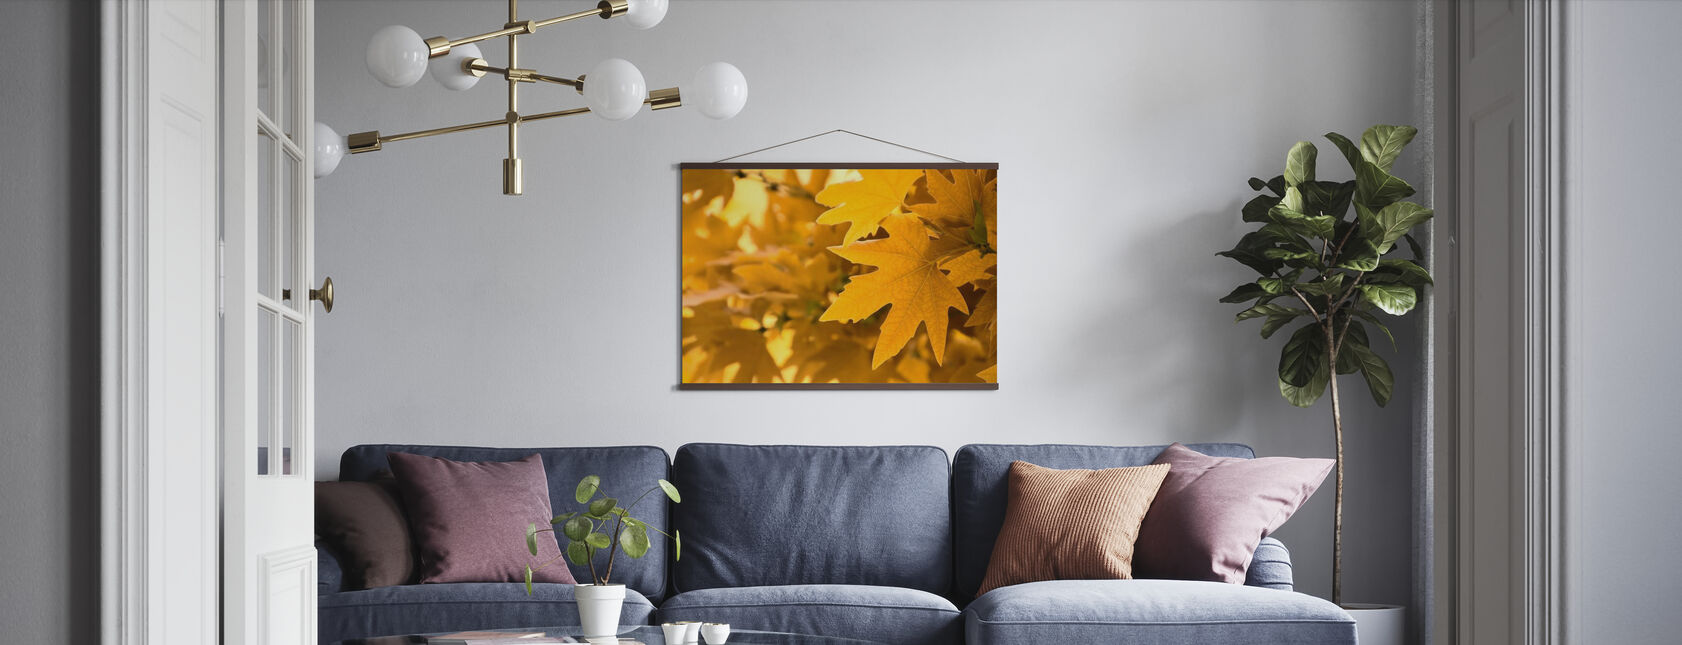 Yellow Leaves - Poster - Living Room